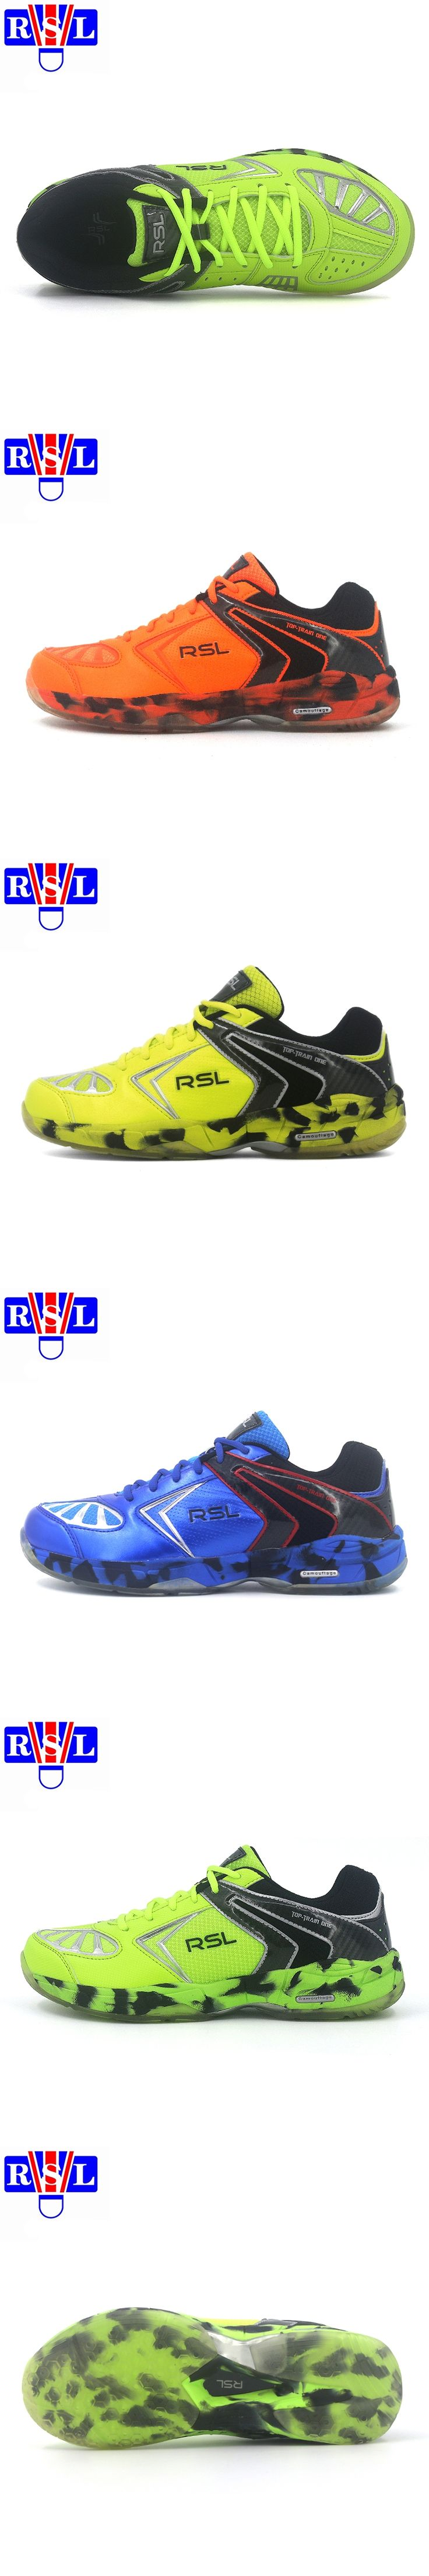 RSL Men's  Badminton Shoes training shoes Breathable Anti-Slippery Light Sneakers RSL Sport Shoes rsl- 0115 sport shoes